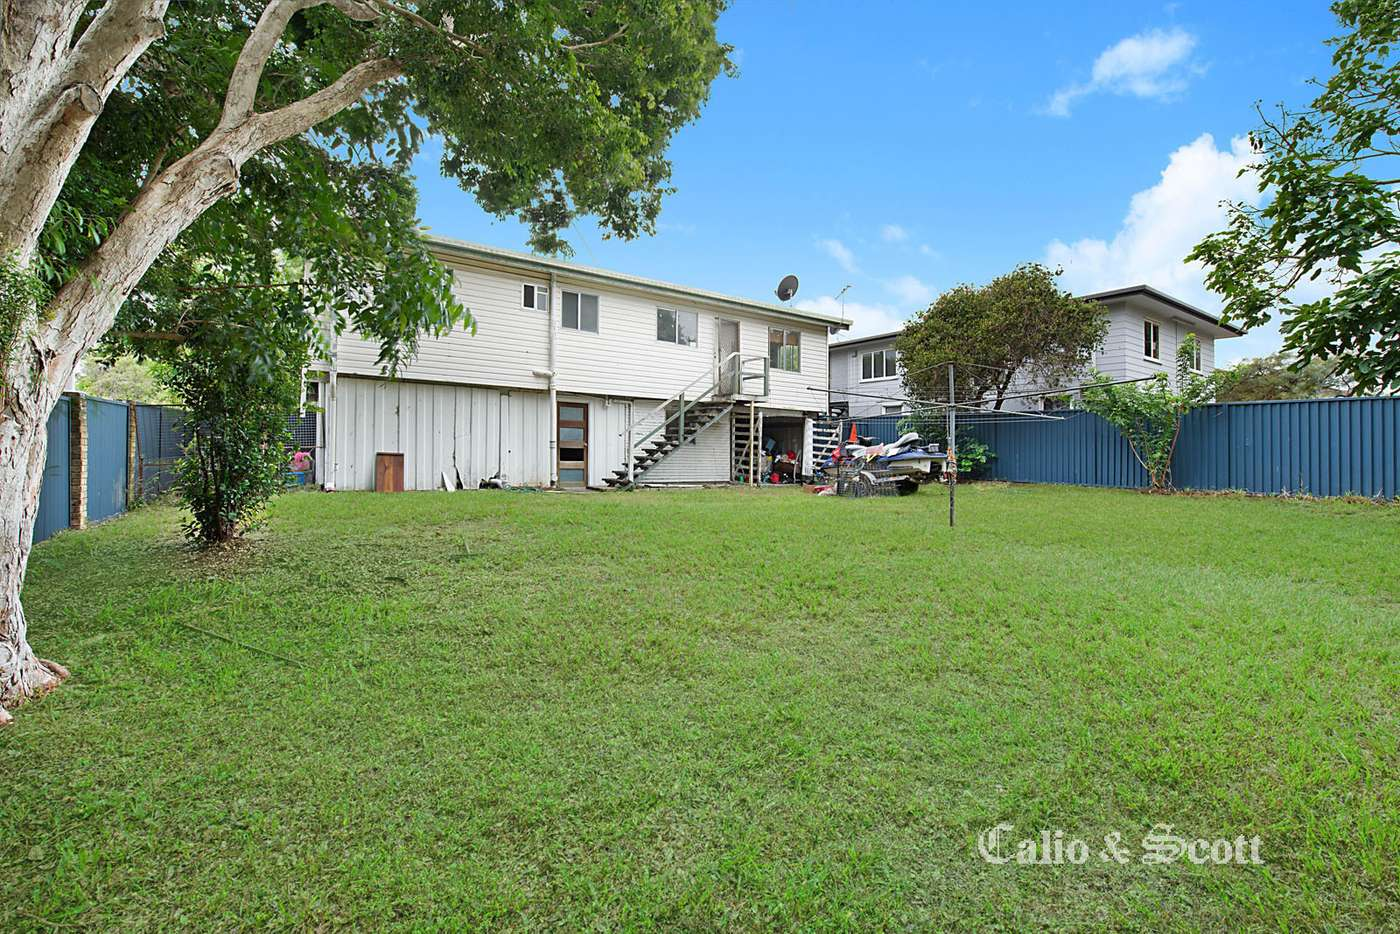 Sixth view of Homely house listing, 26 Pownall Cres, Margate QLD 4019